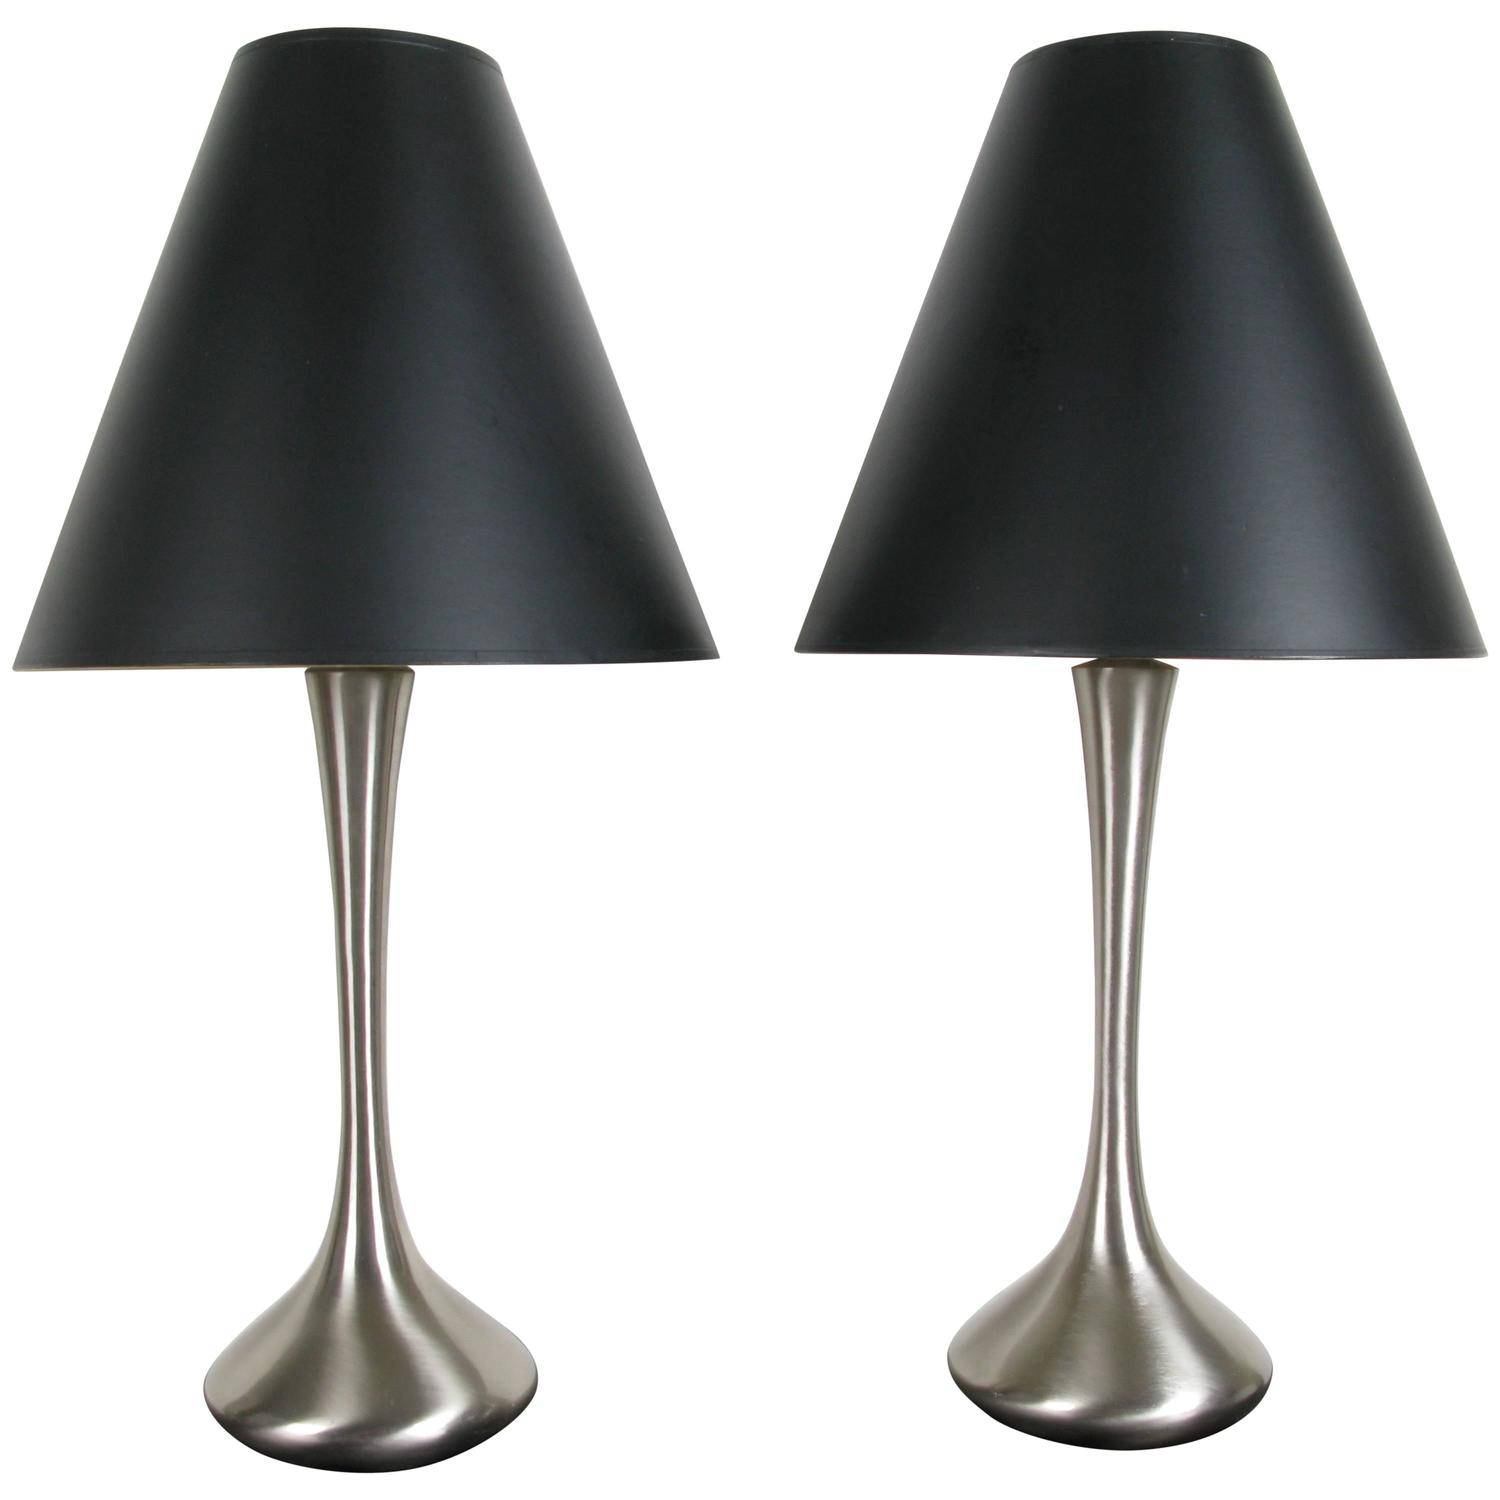 Pair Of Brushed Metal Lamps With Original Shades By Laurel